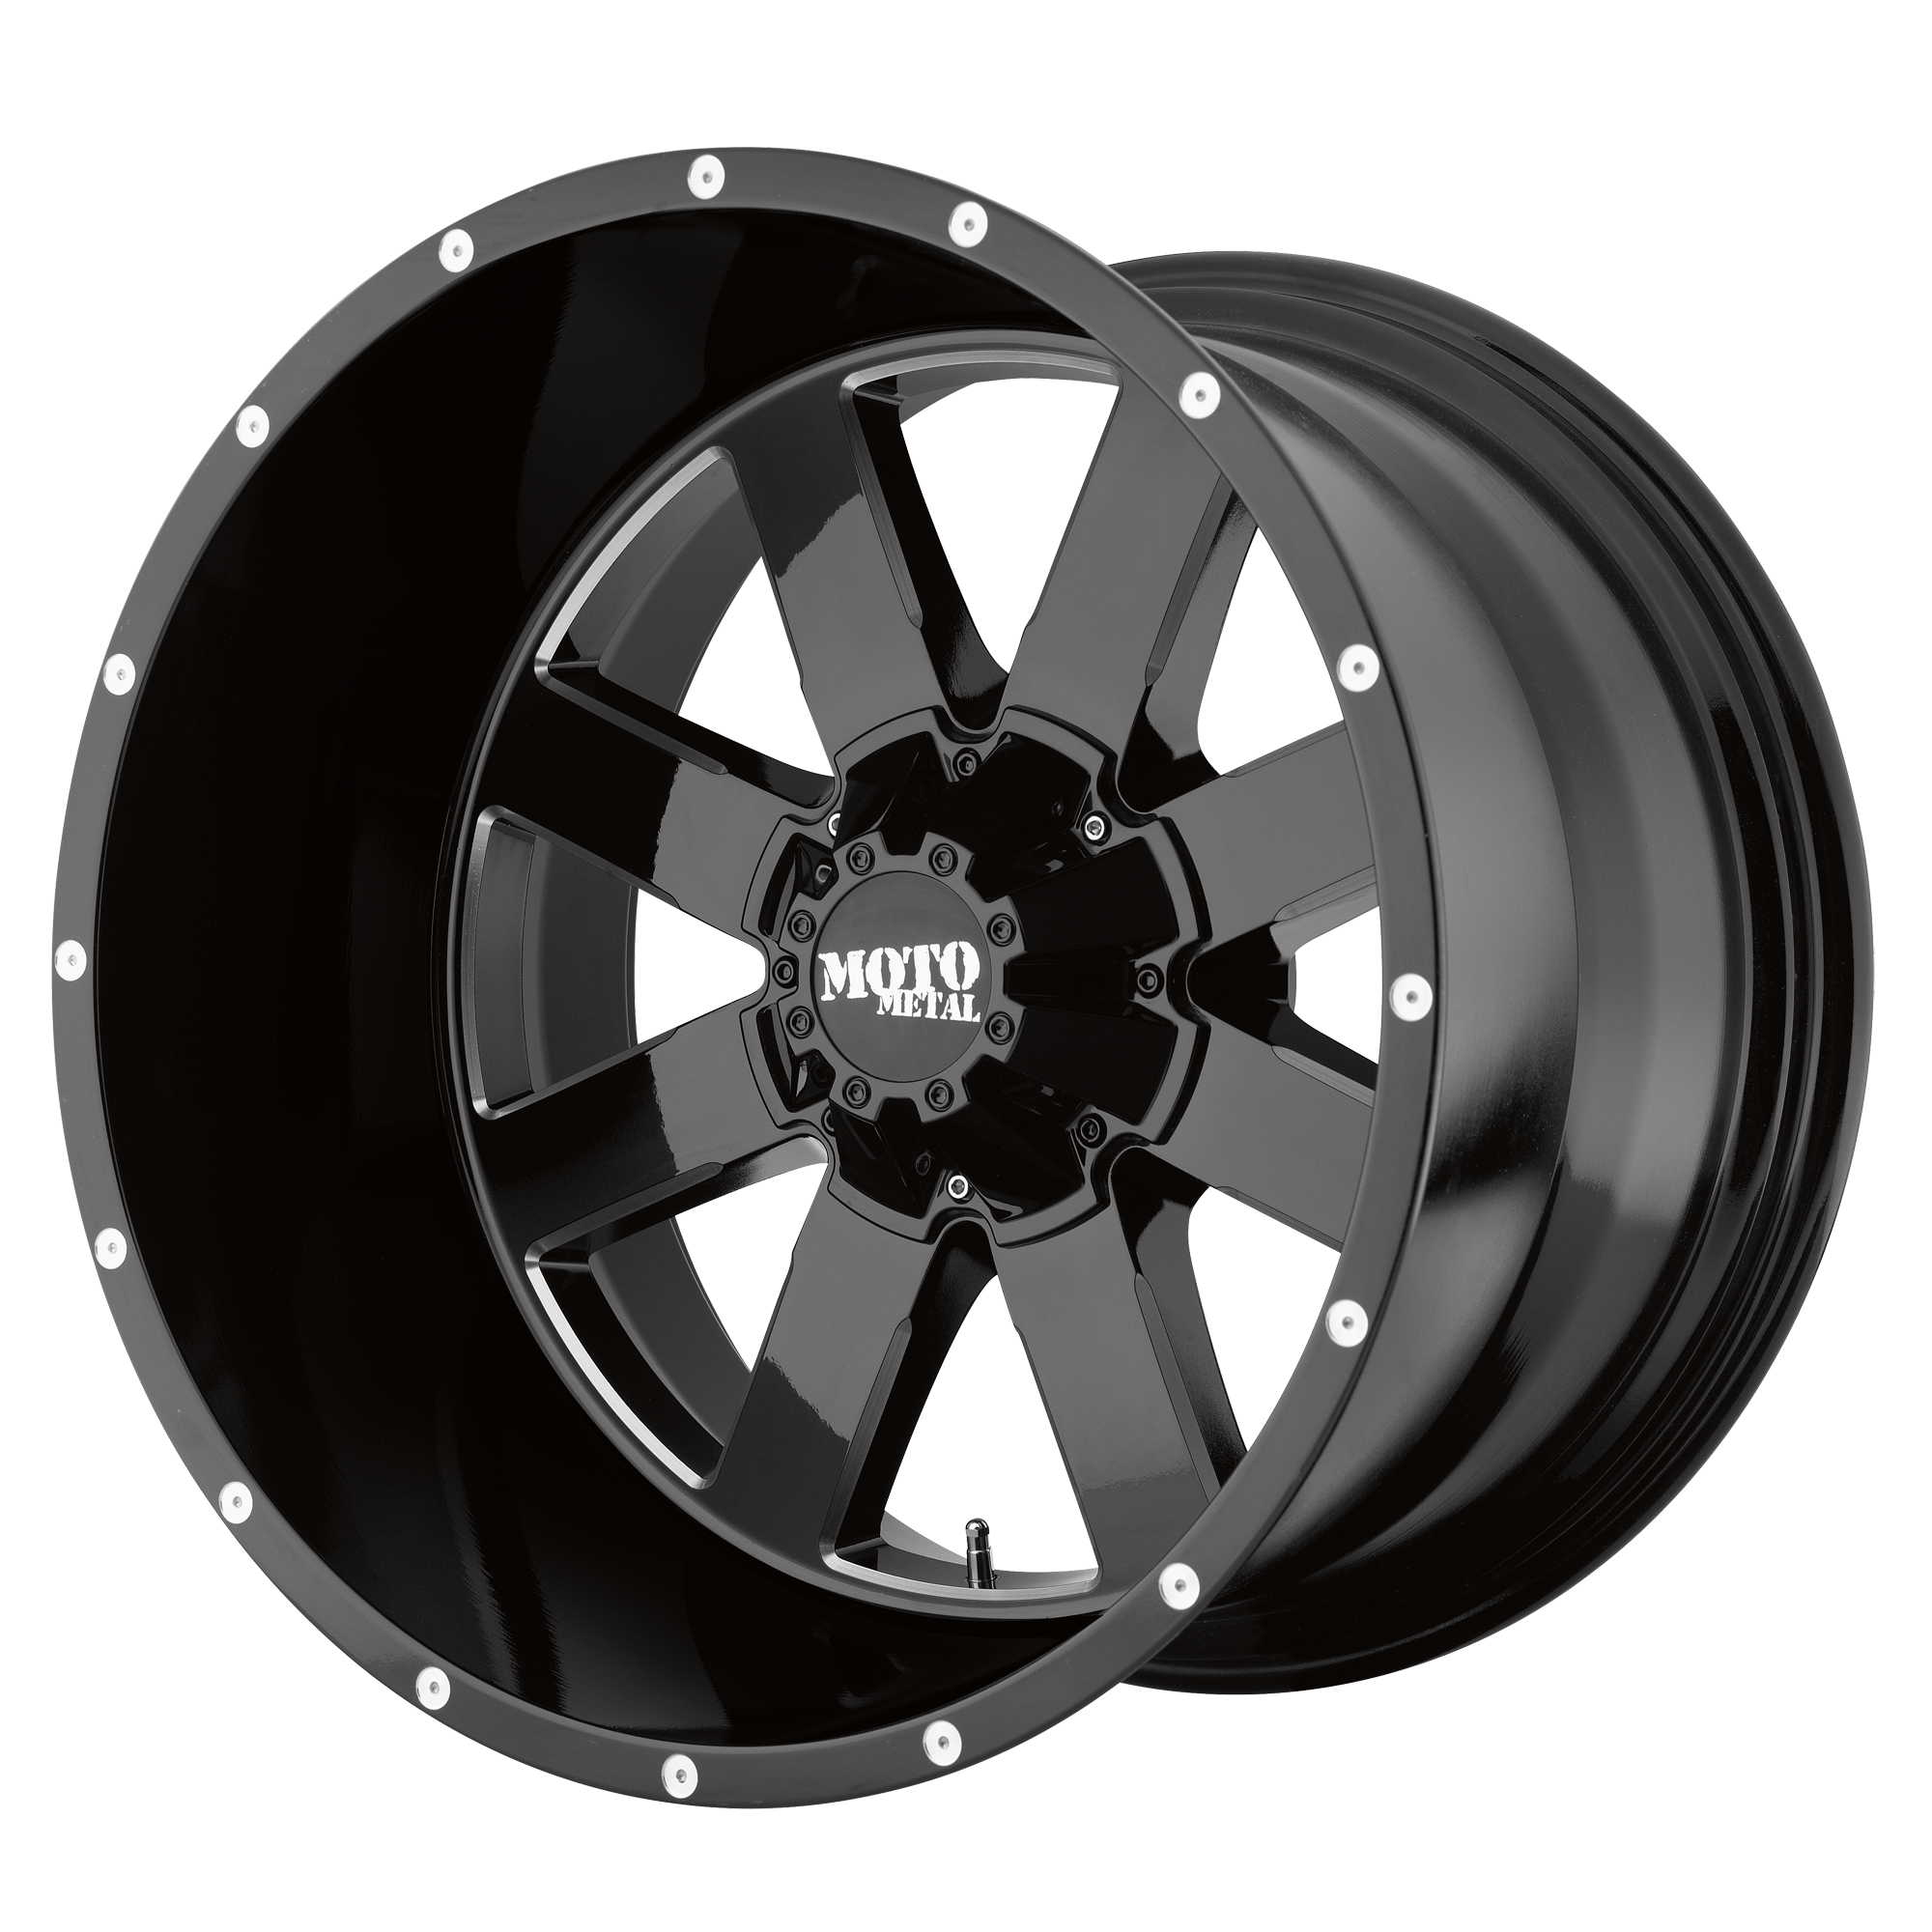 Moto Metal Offroad Wheels MO962 Gloss Black w/ Milled Accents